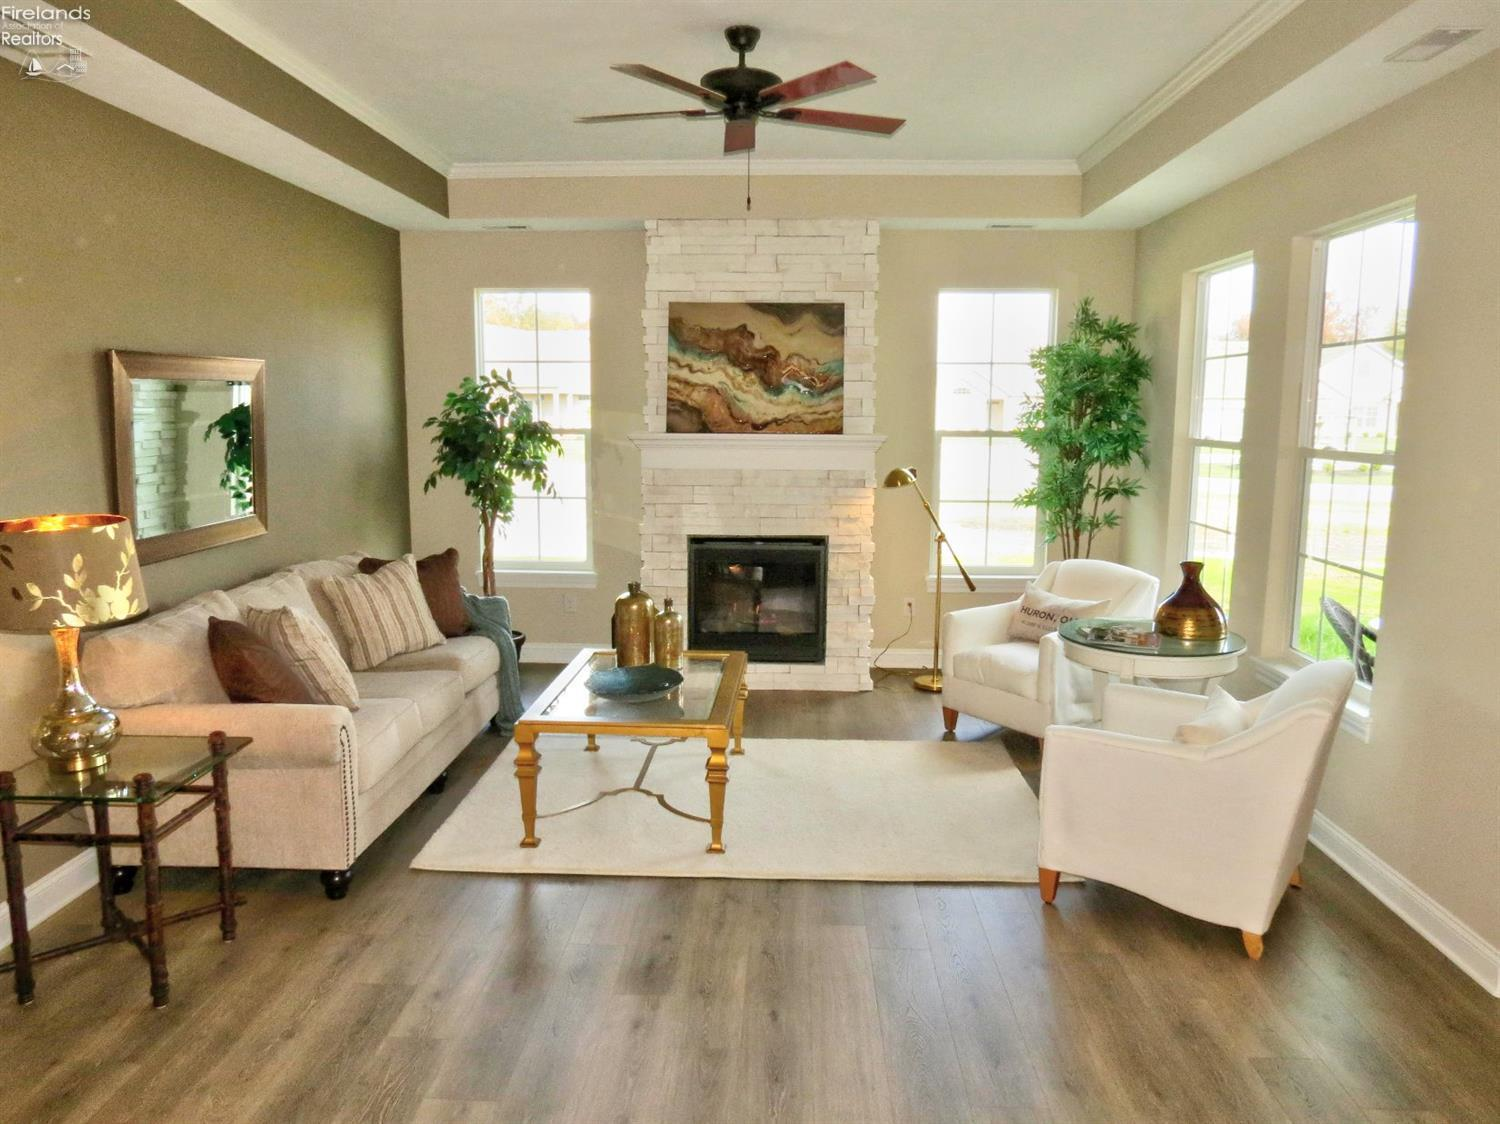 Living Area featured in The Ashley By Marblewood Homes in Sandusky, OH